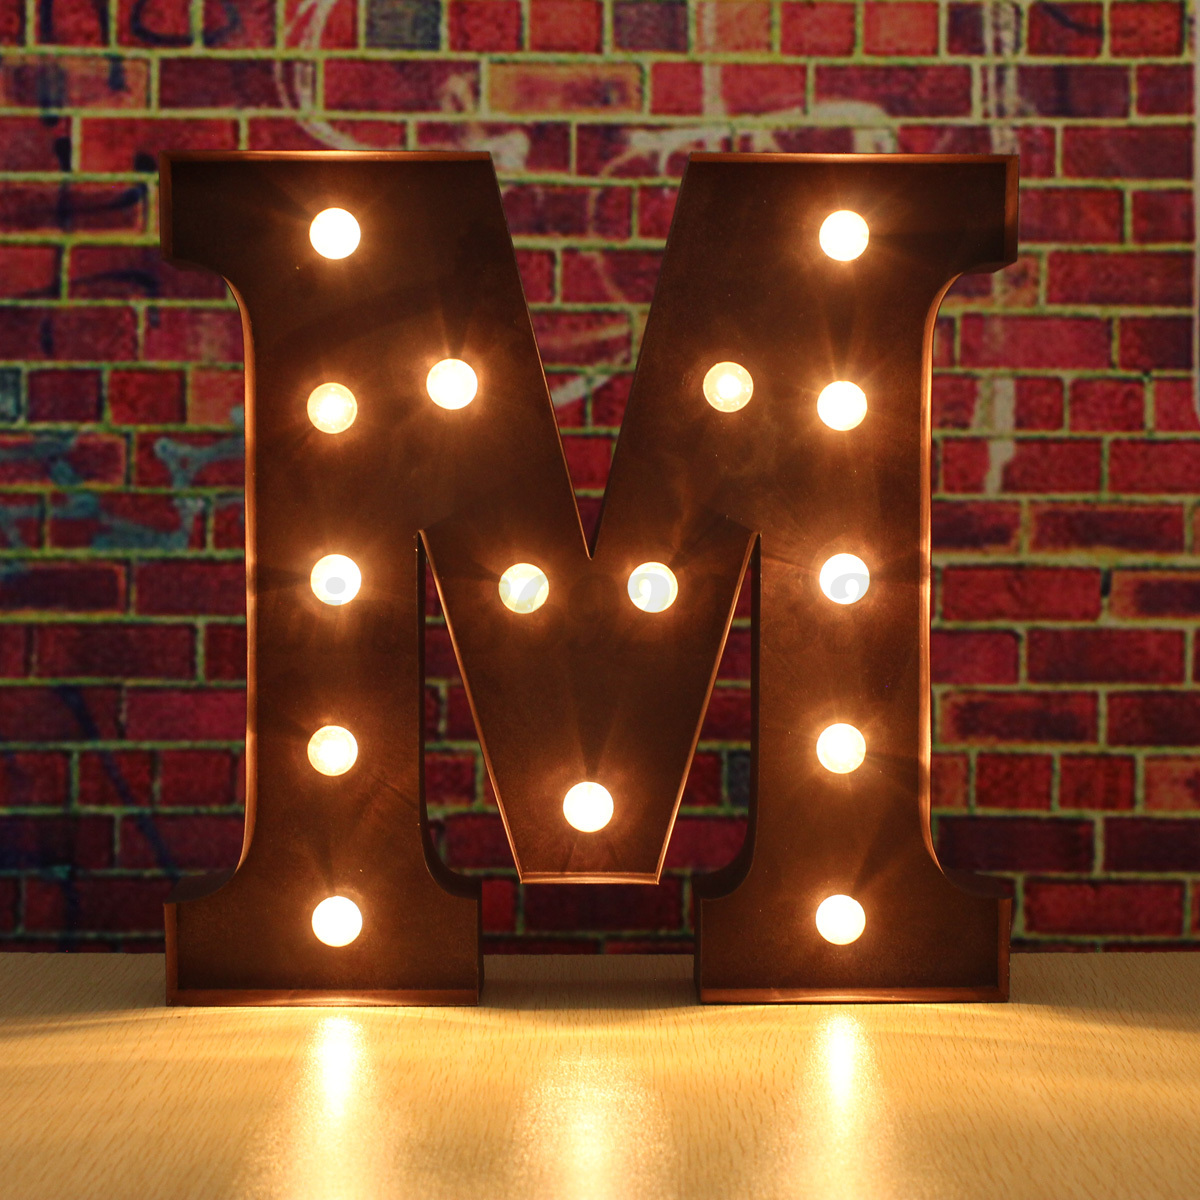 letters with lights fashion led 12 39 39 marquee letter lights vintage circus 23435 | 1BD793962696917633D46393CD03CE33CCD62A9ECF93C7469C66C96AD28346C946D2569E37C6CCD2339C7373D24E9A66C9CD3663639AE1635373CDA0C6